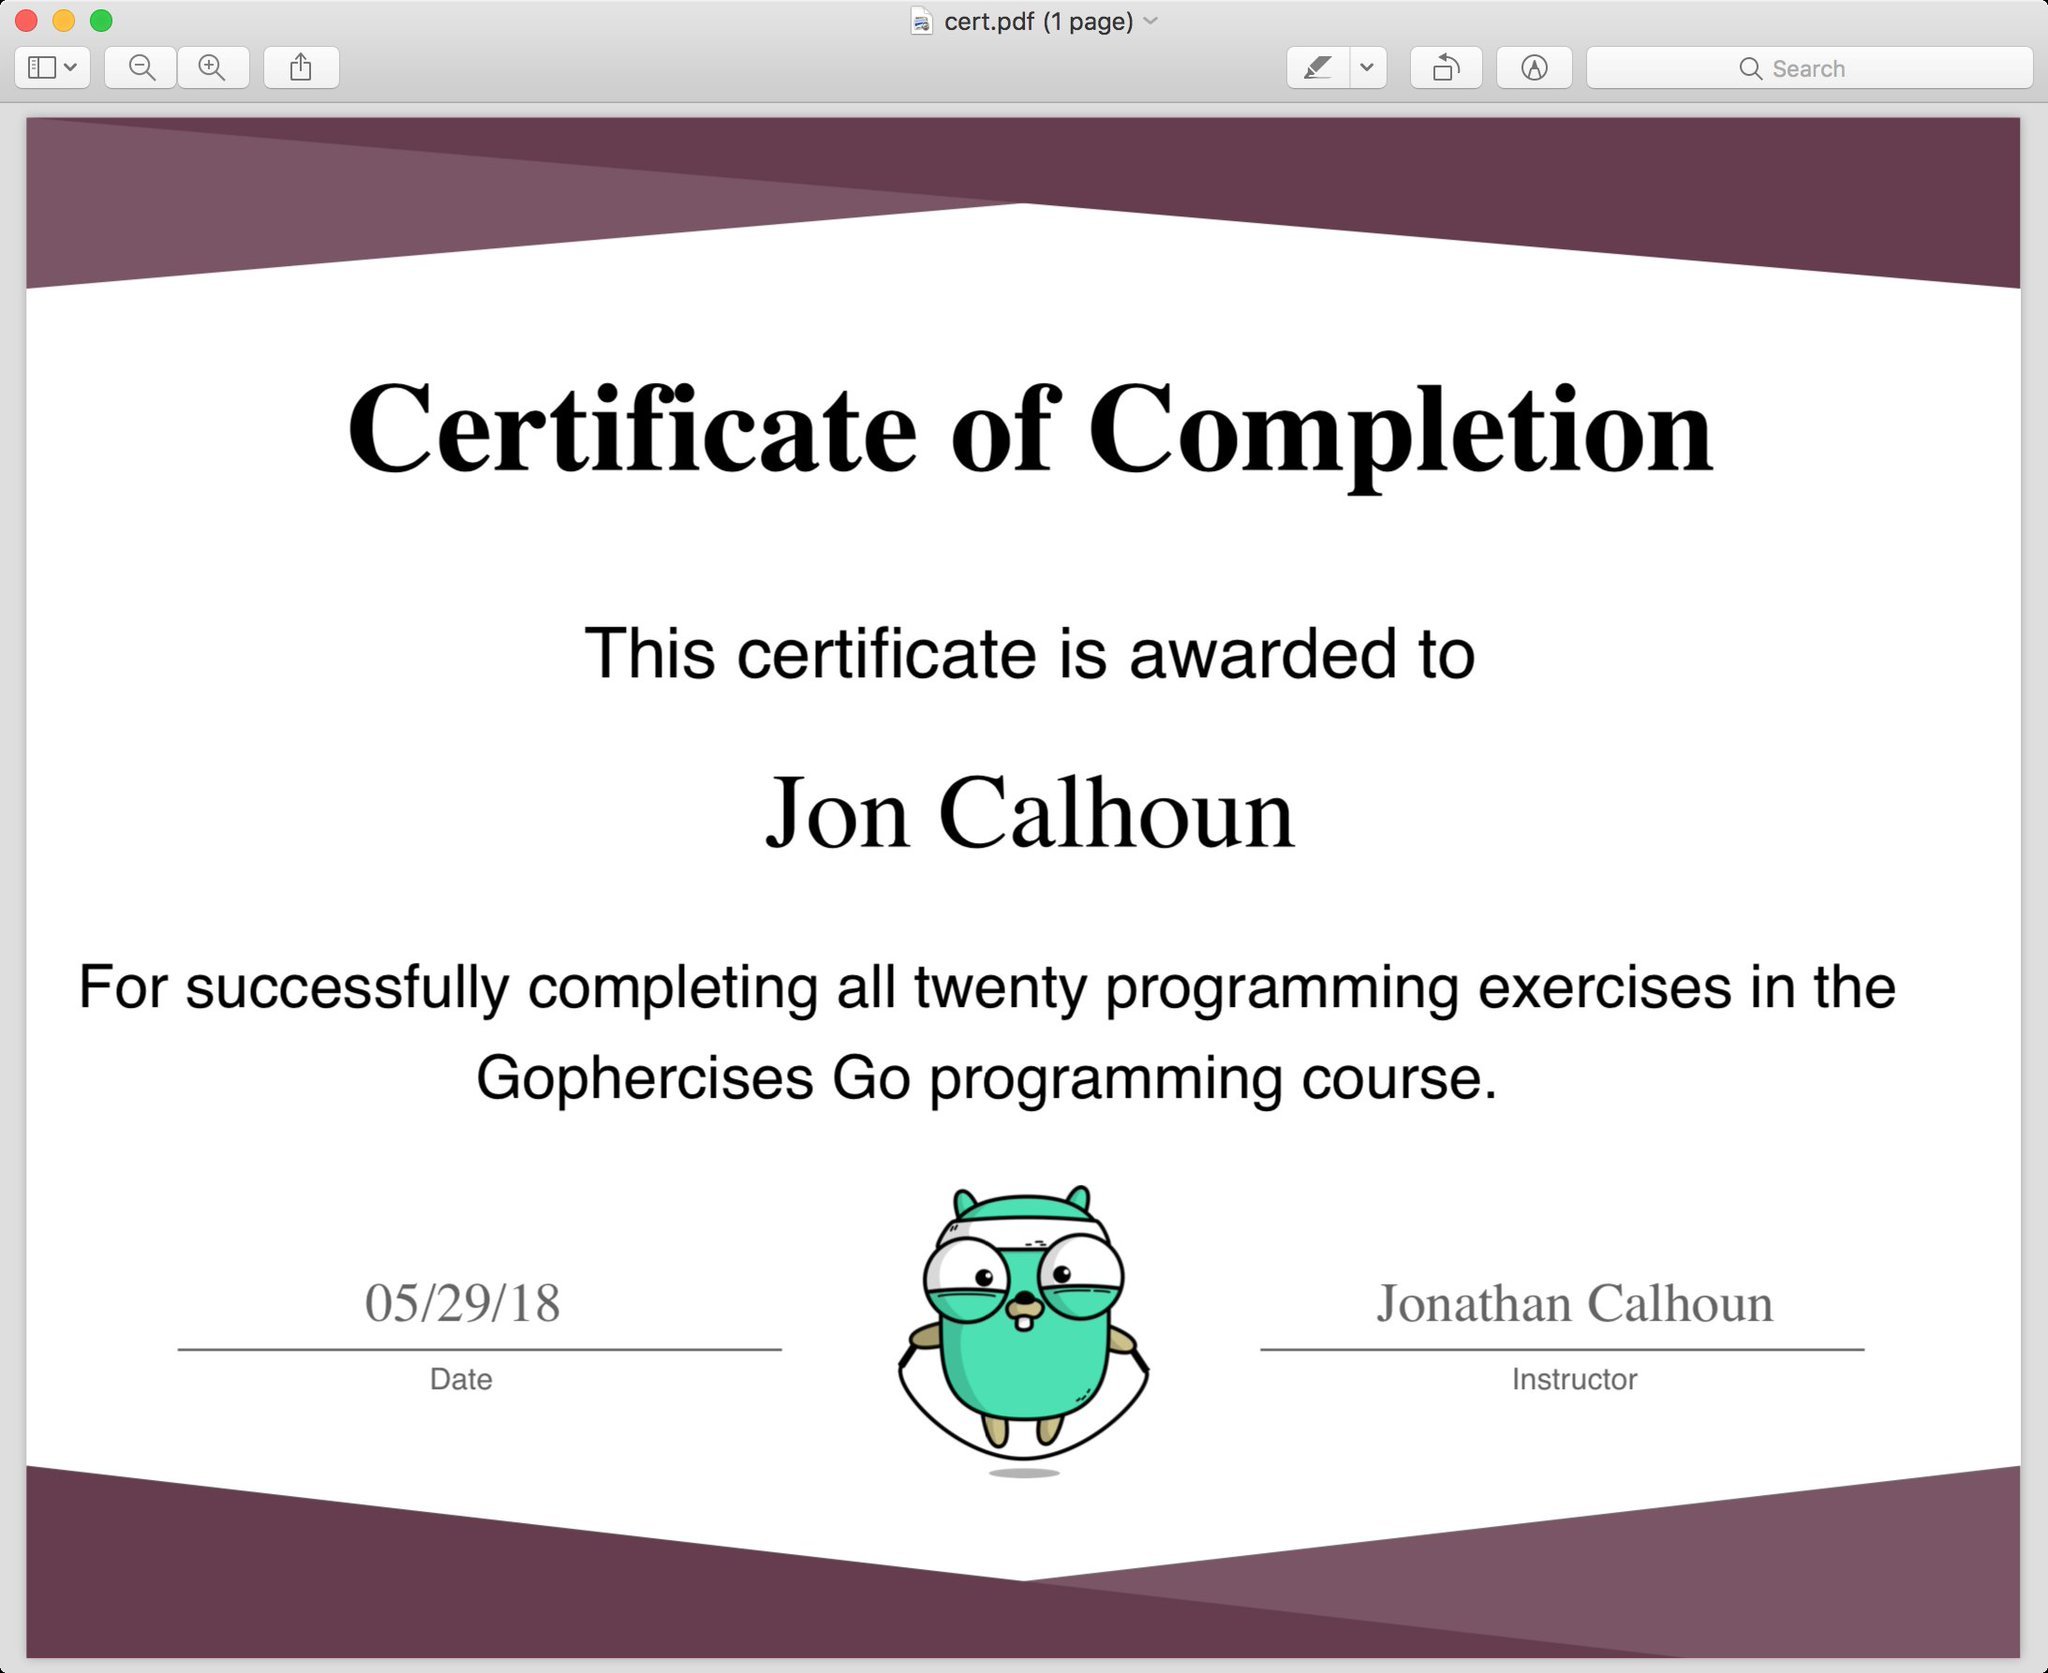 Screenshot of the course completion certificate PDF